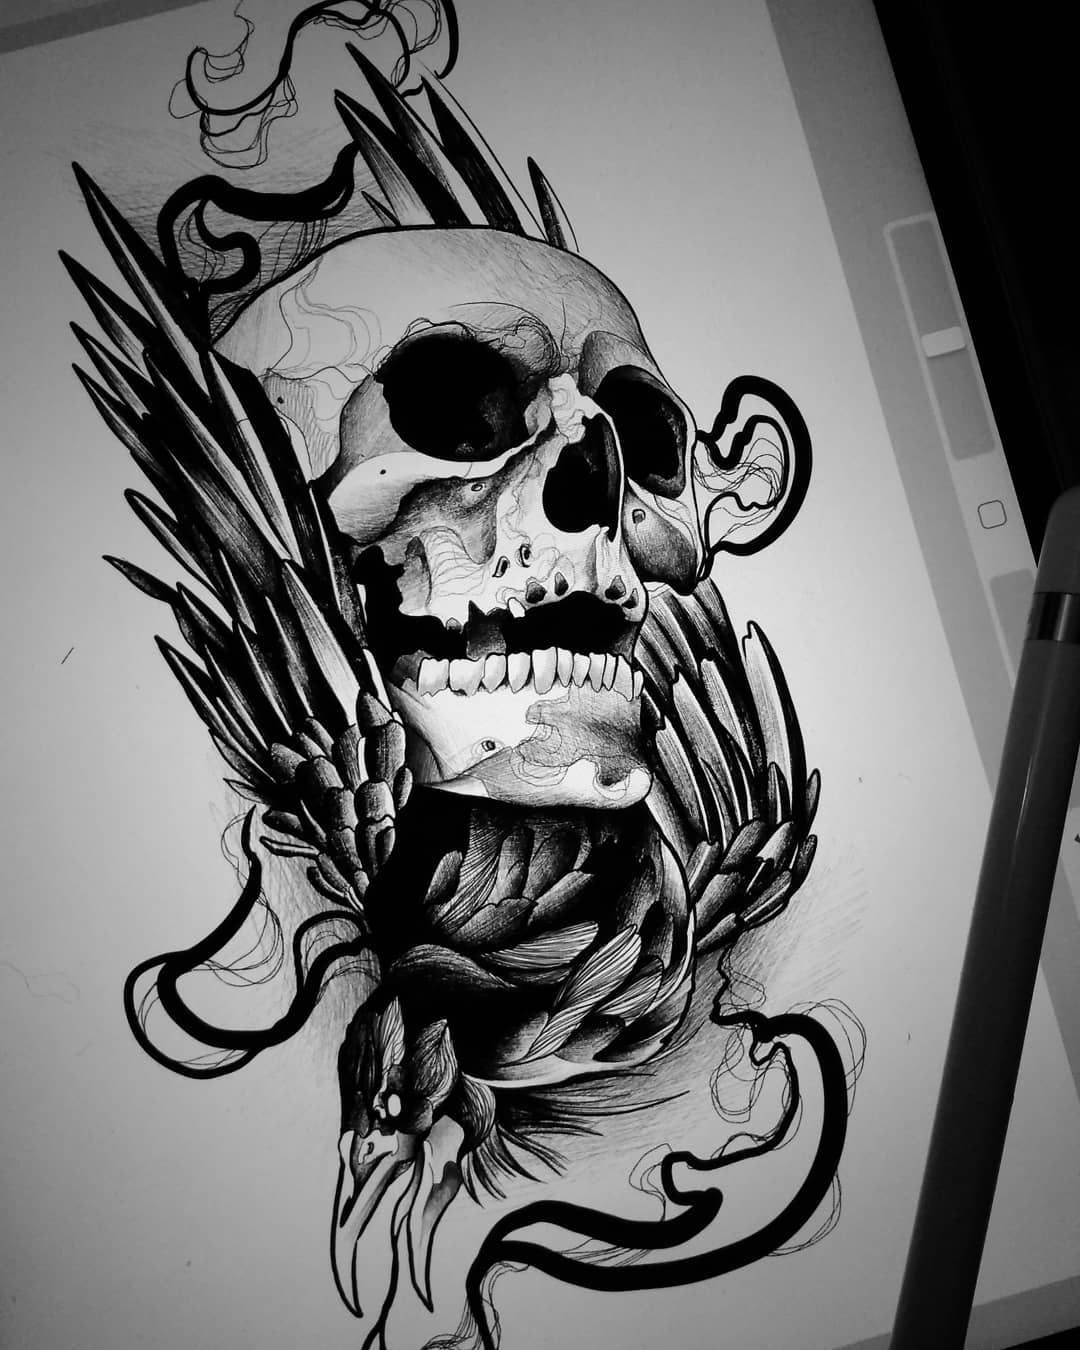 Sketches Tattoo On The Theme Of Horror Tattoo Sketches Tattoos Skull Tattoo